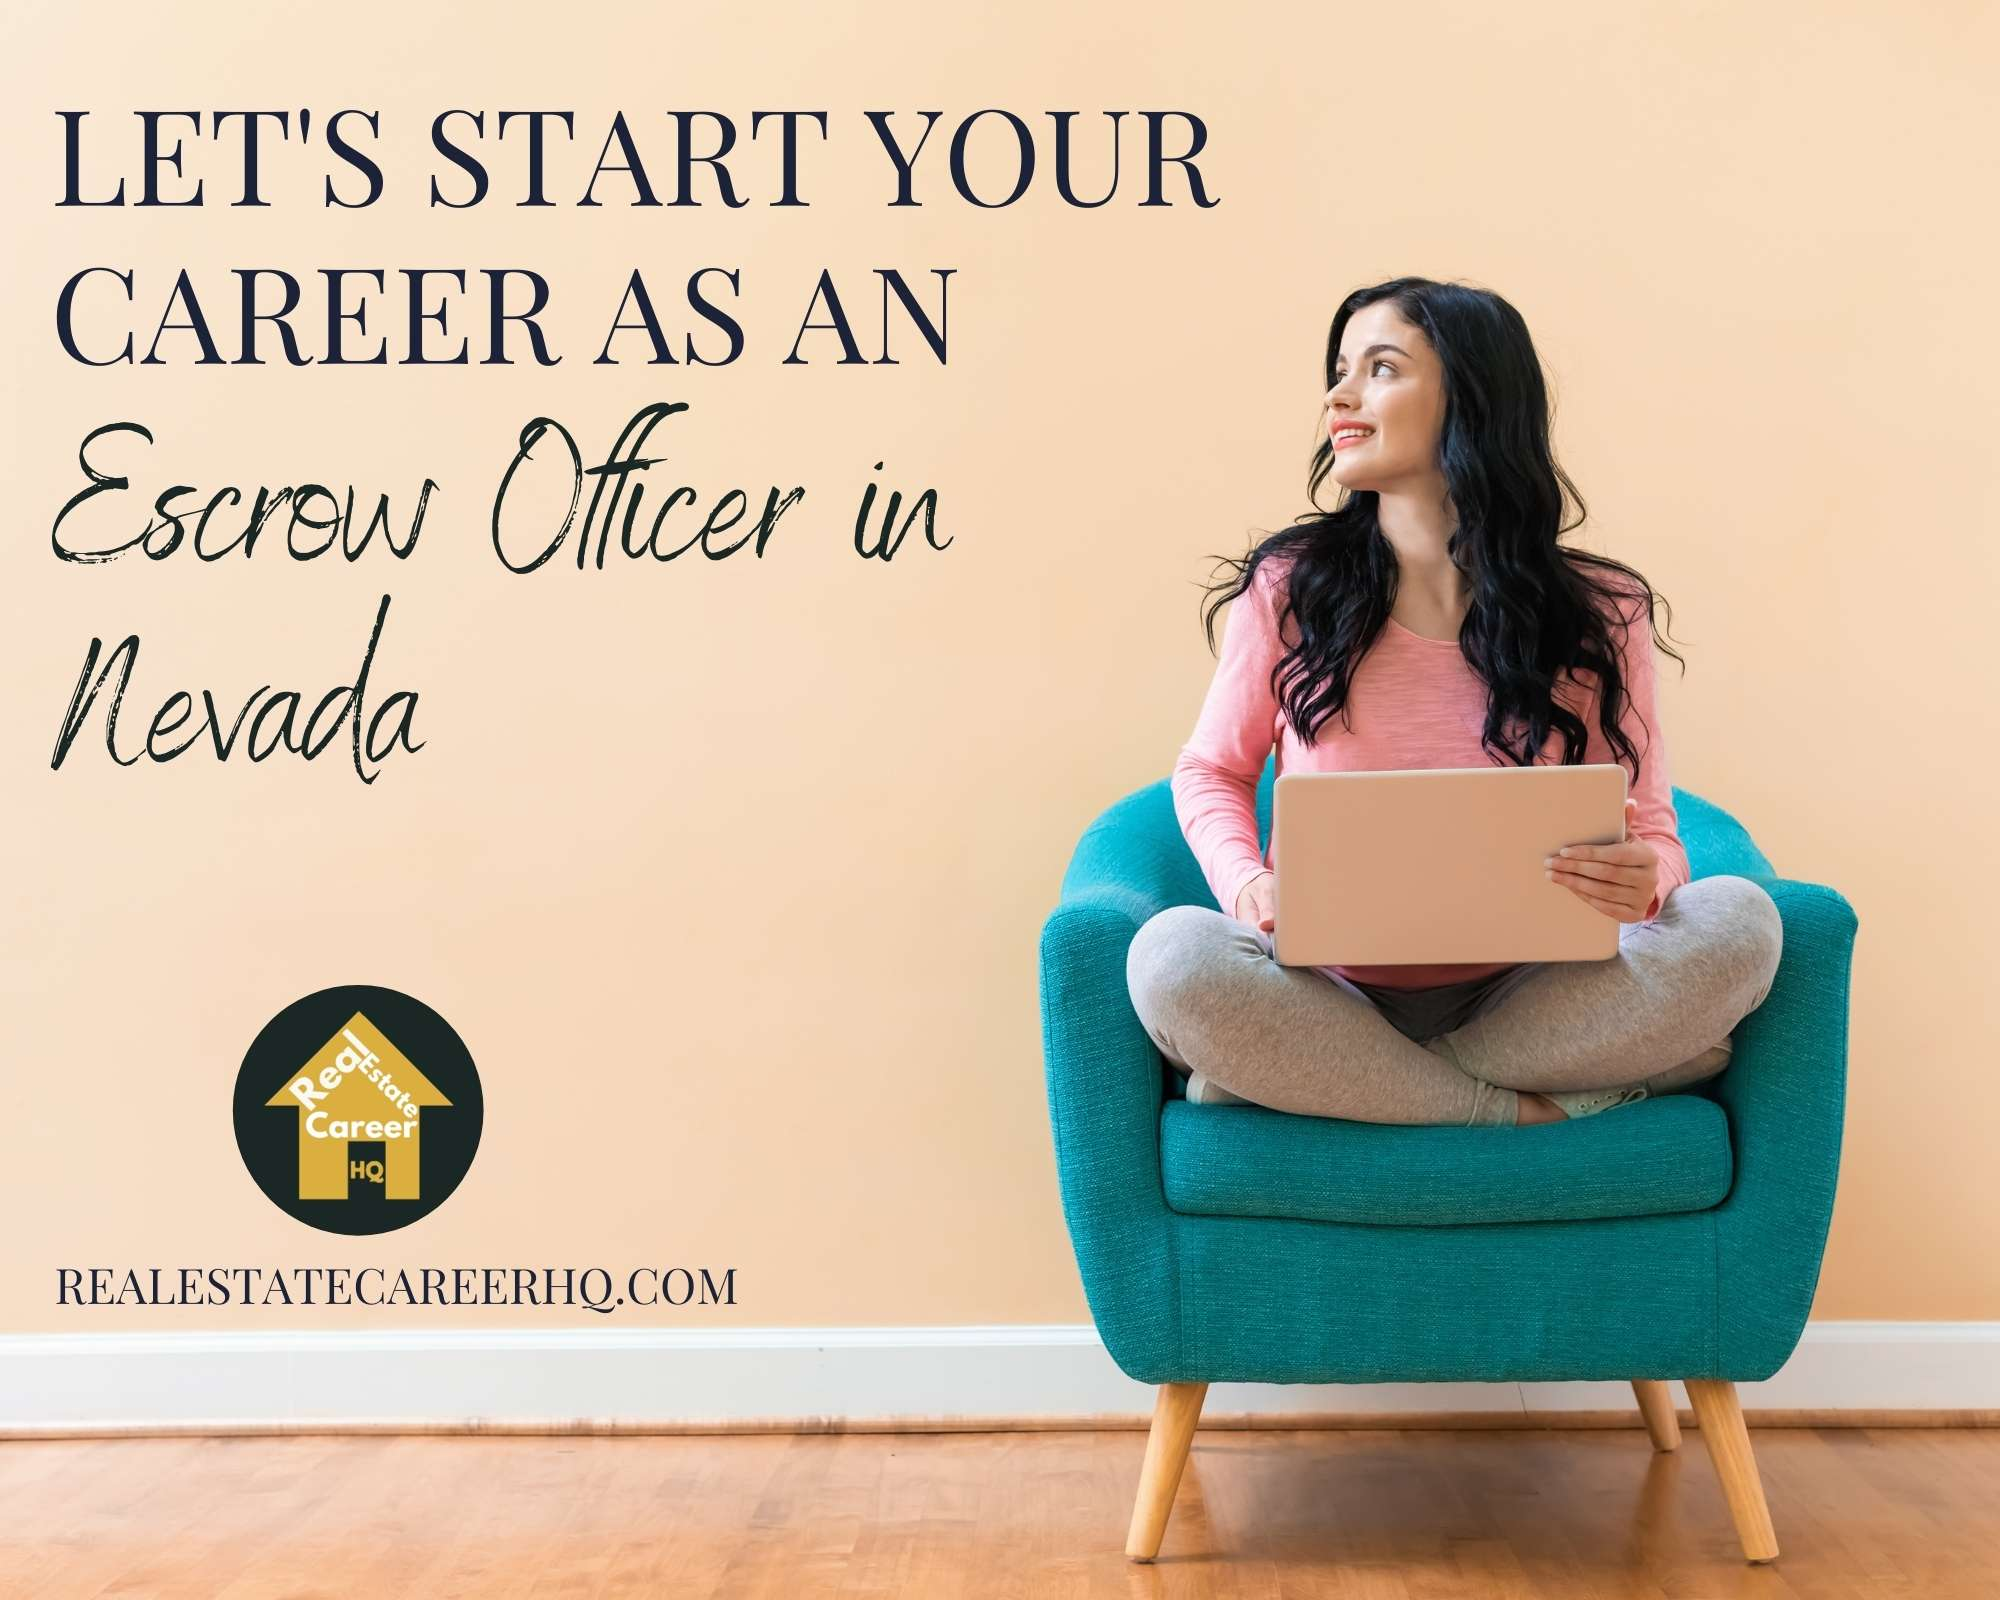 How to become an escrow officer in Nevada